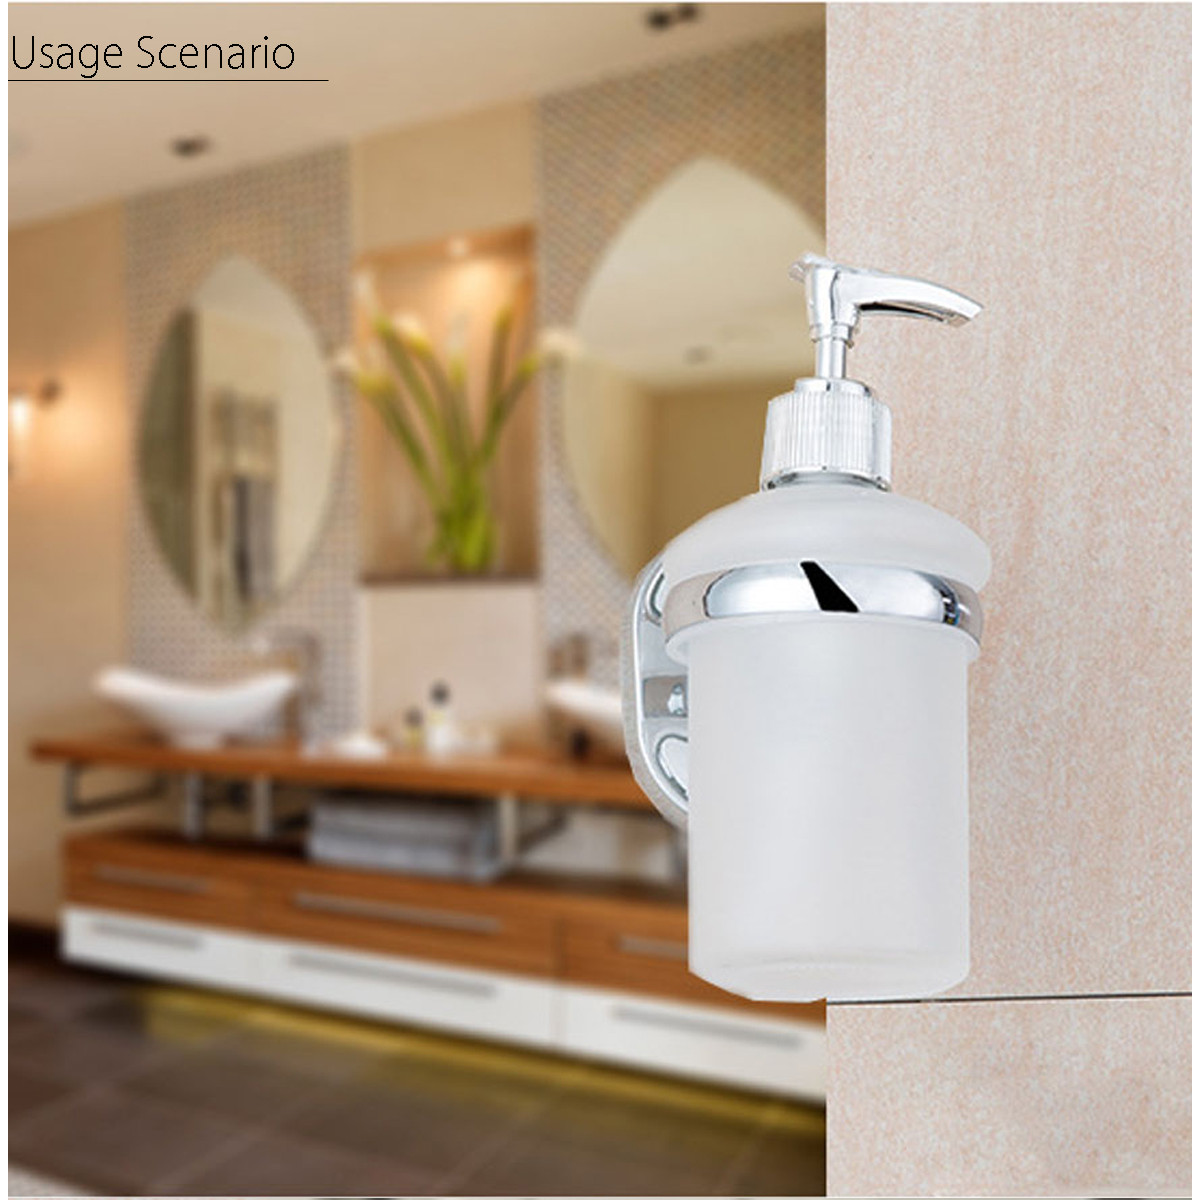 Stainless Steel Wall Mounted Soap Dispenser Holder Shampoo Bottle Frosted Glass